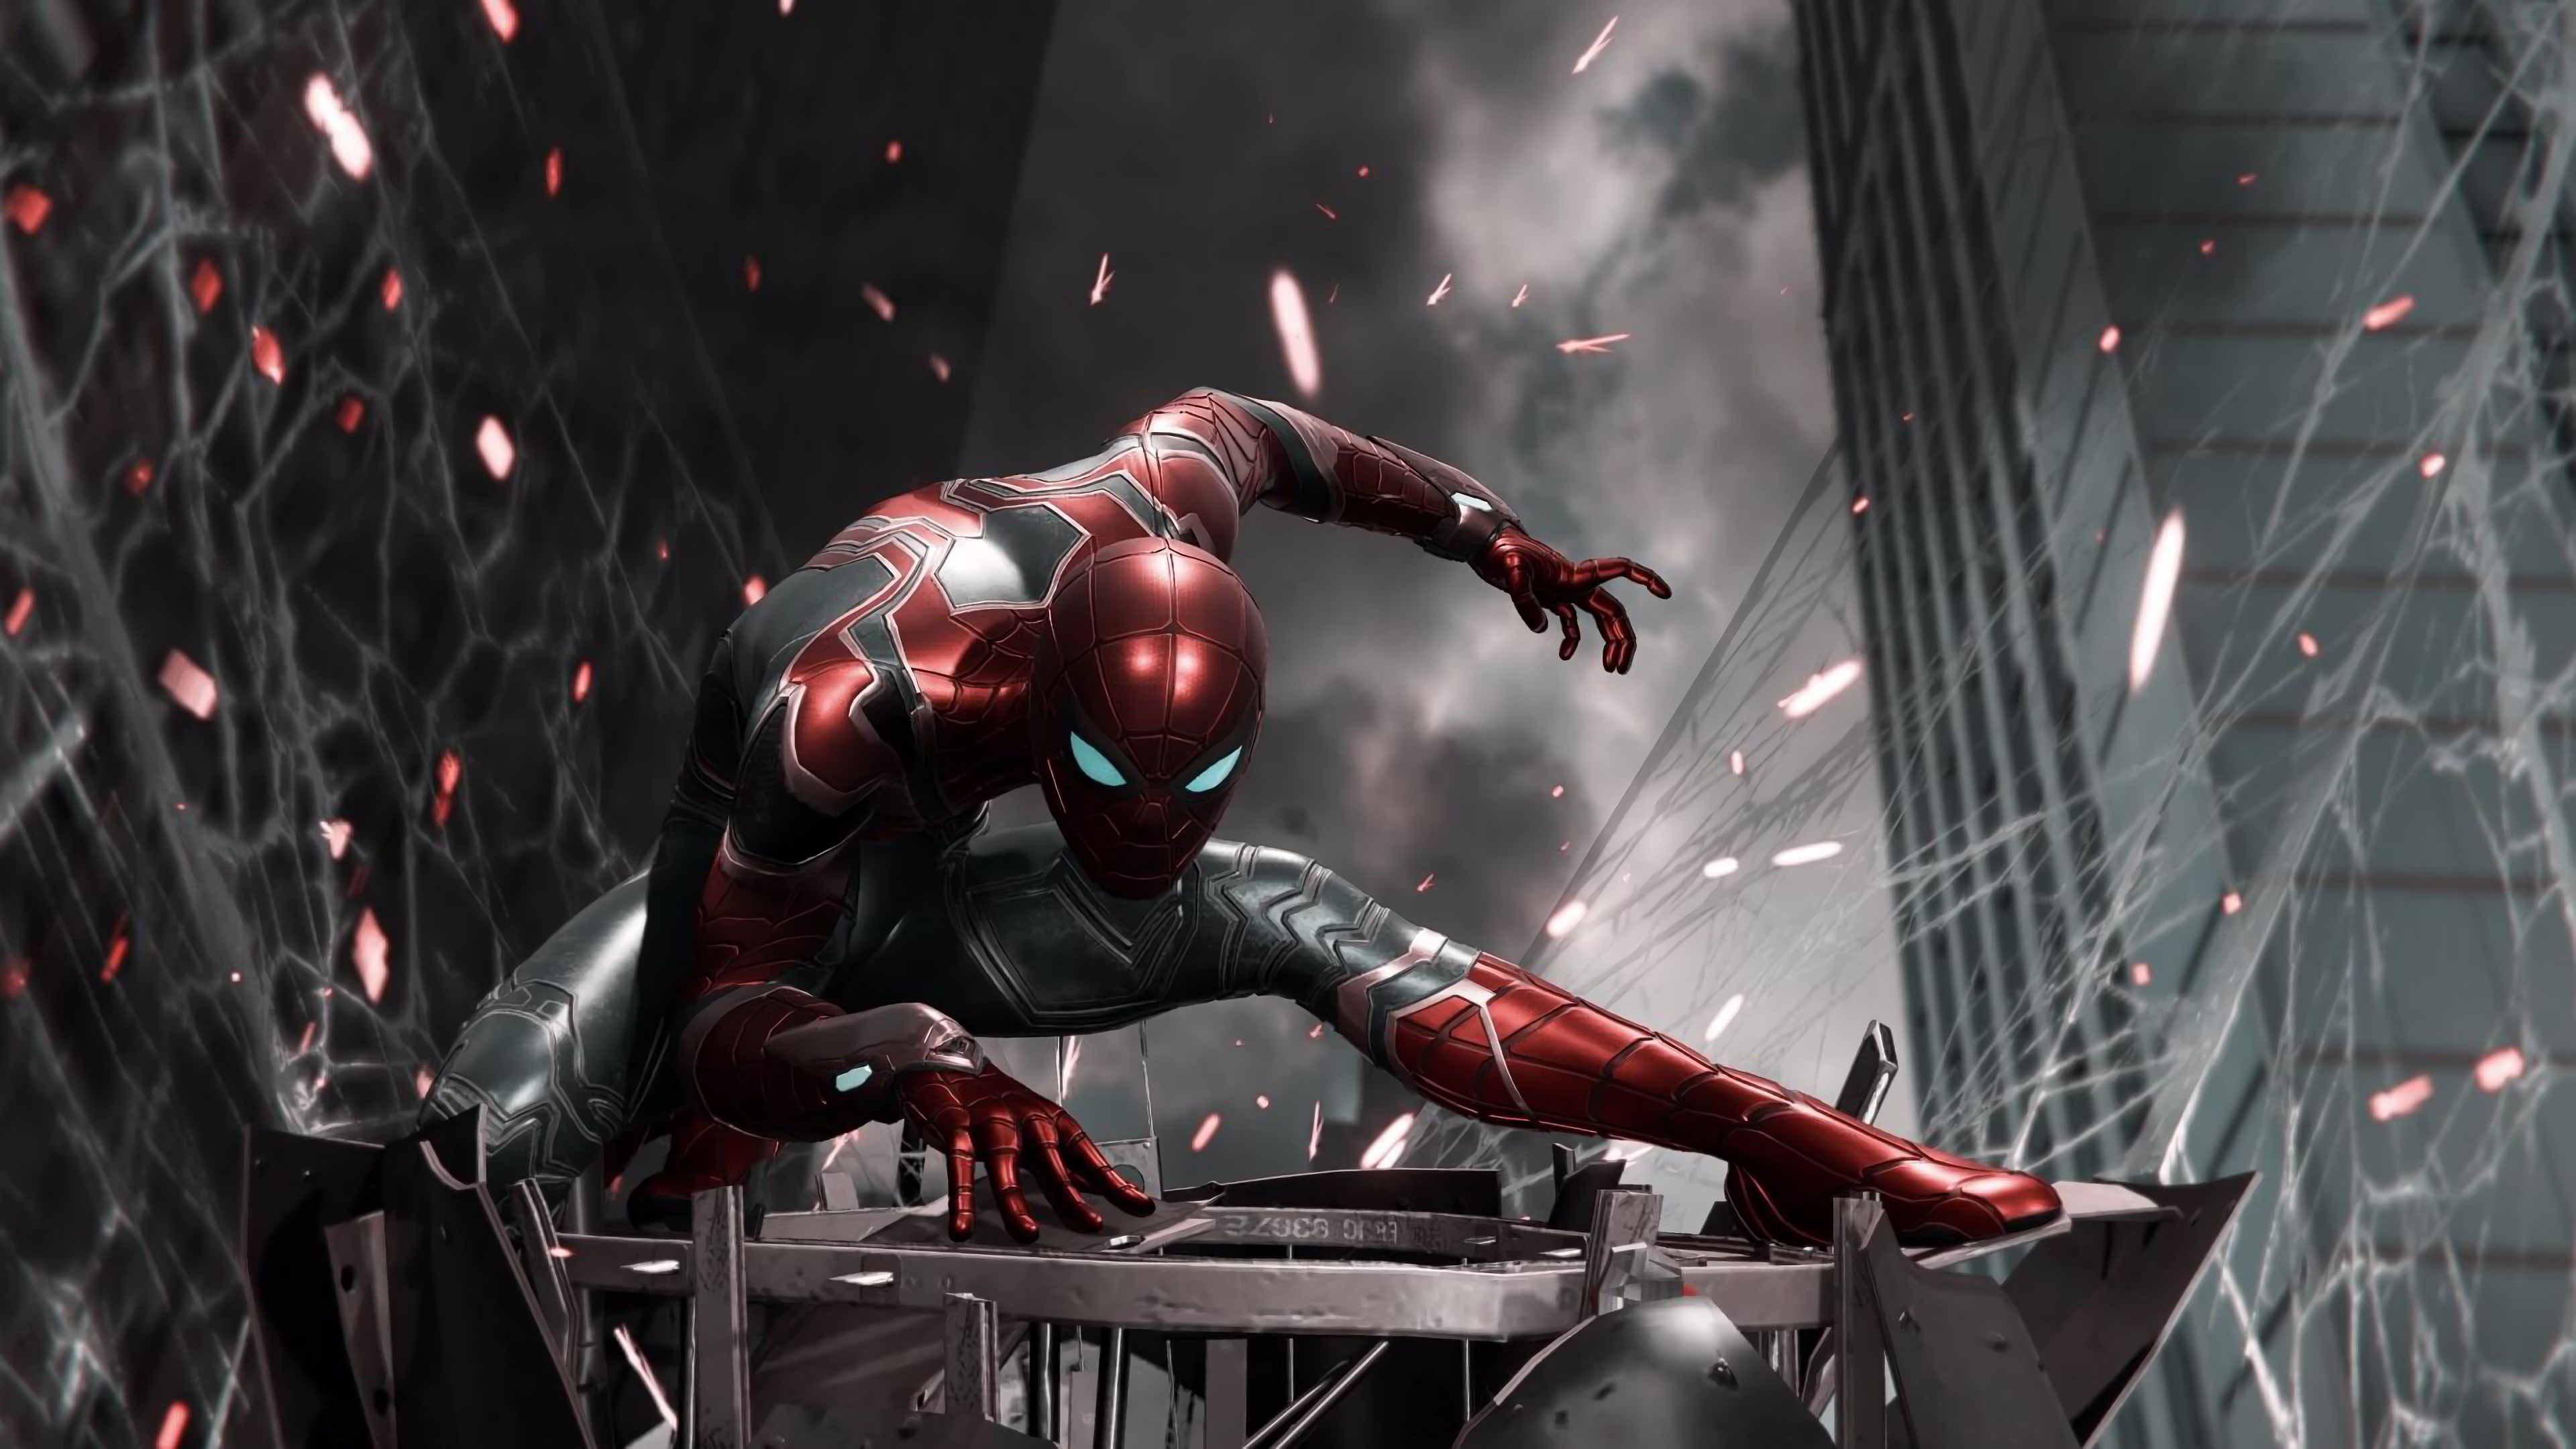 Game Of Spider Man Hd Wallpaper: Spiderman Iron Suit Ps4, HD Games, 4k Wallpapers, Images